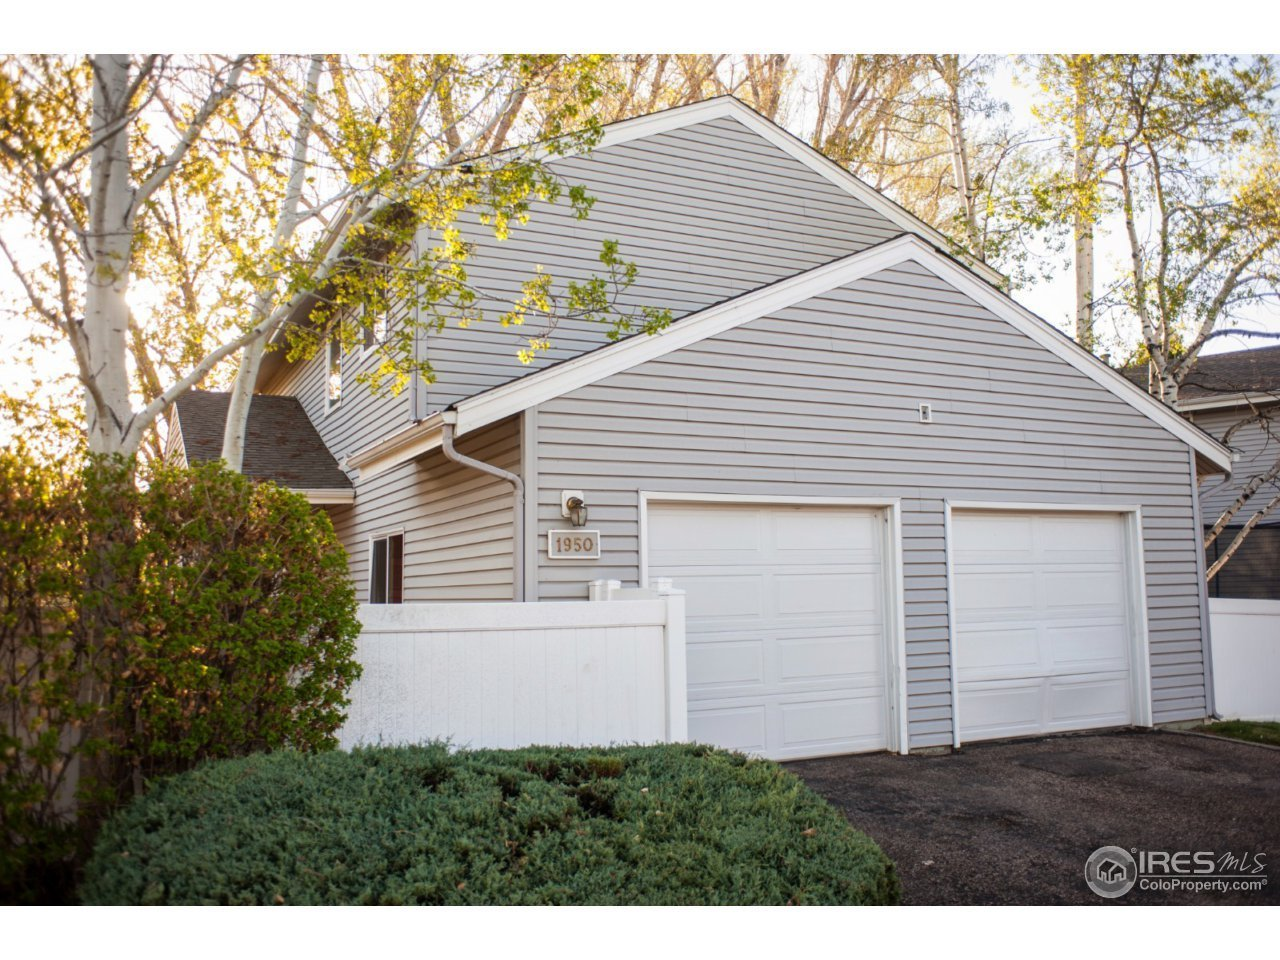 1950 29th ave, greeley, co 80634   mls# 821927   redfin